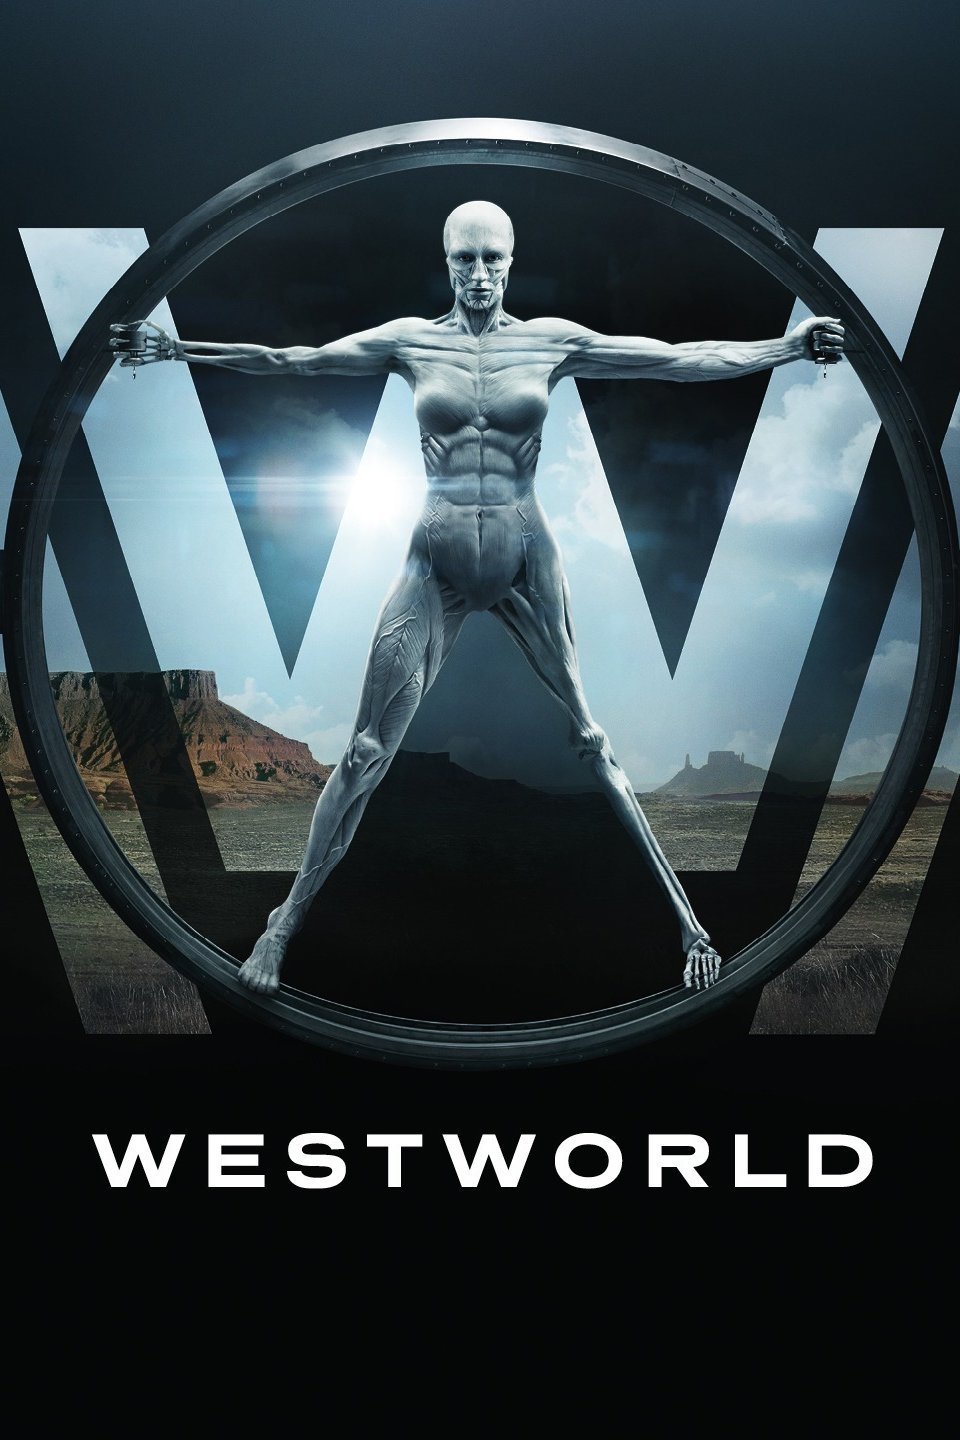 Westworld Tv Series Download Season 1 Complete 480p HDTV Micromkv